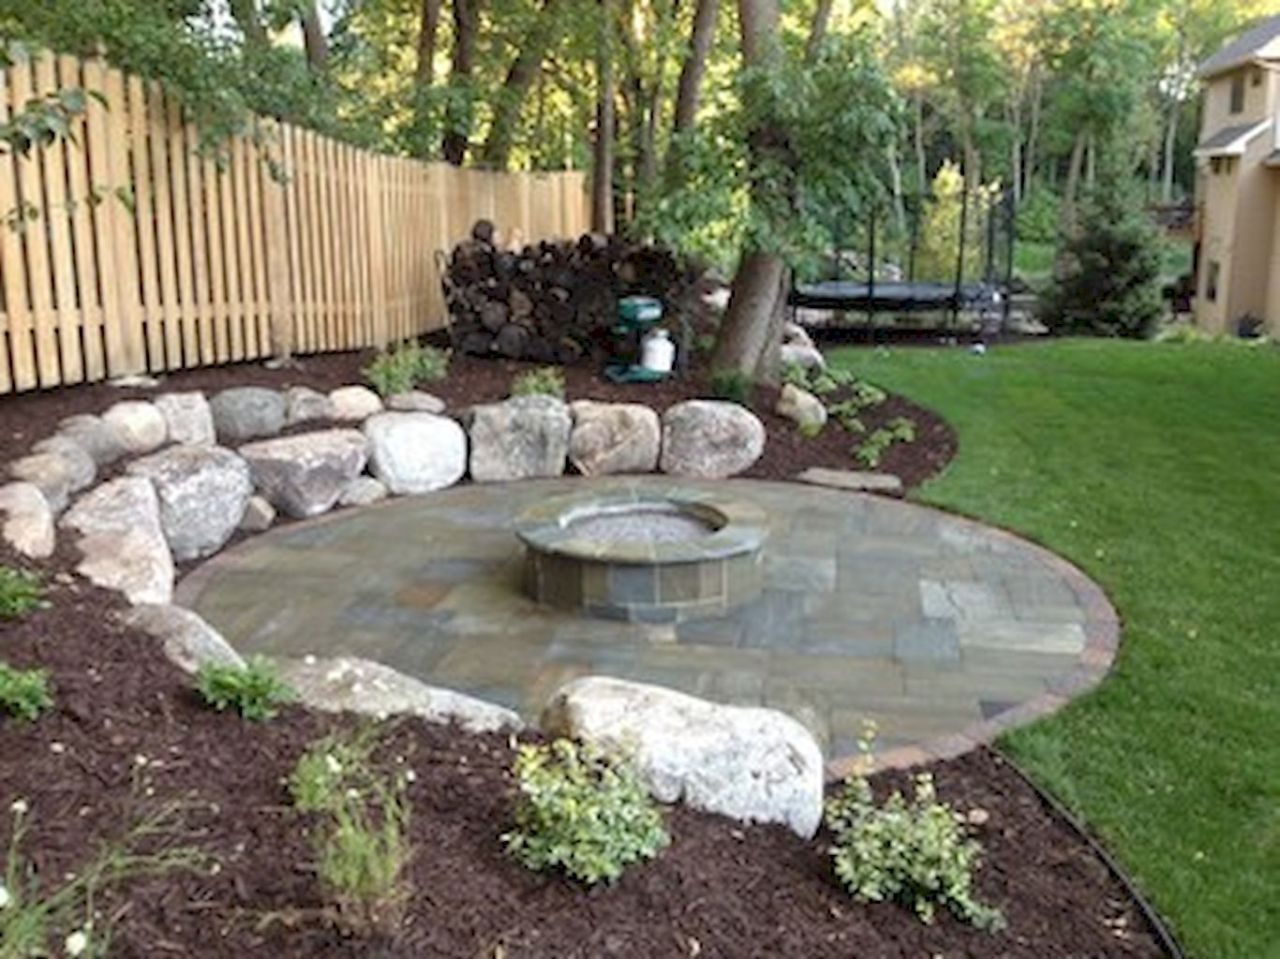 80 Diy Fire Pit Ideas And Backyard Seating Area Firepitideas In